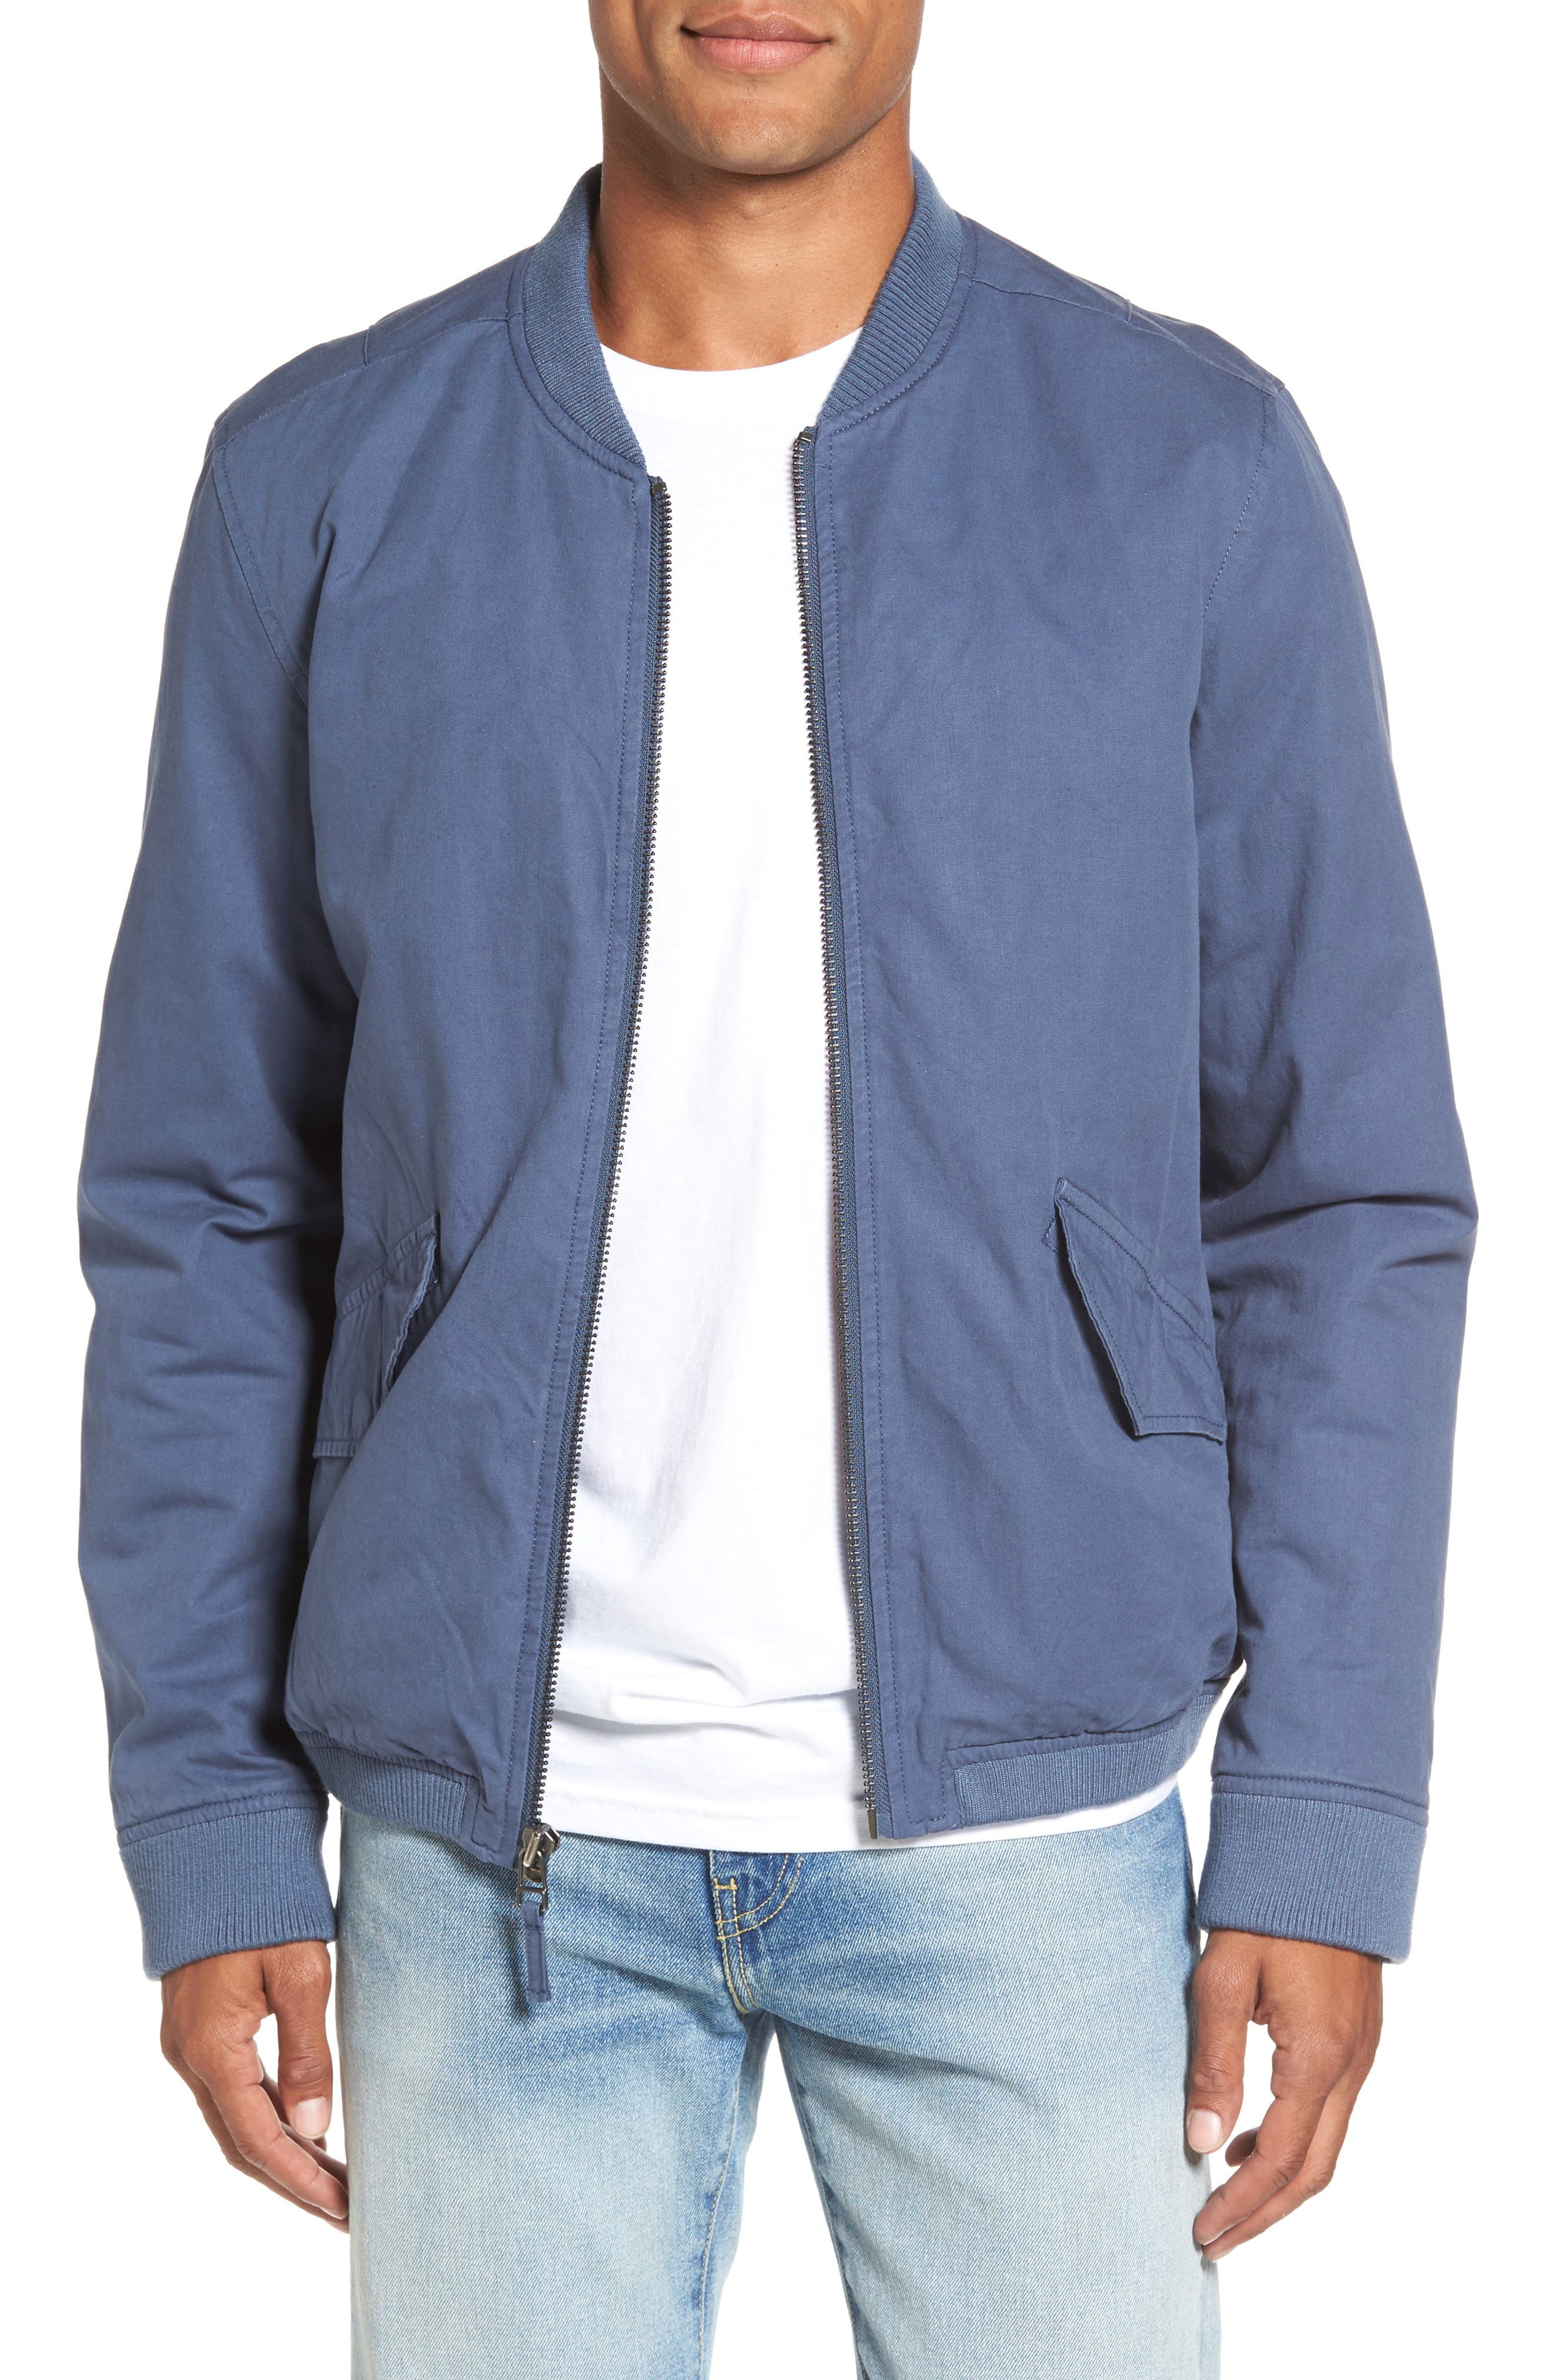 Alternate Image 1 Selected - RVCA All City Bomber Jacket